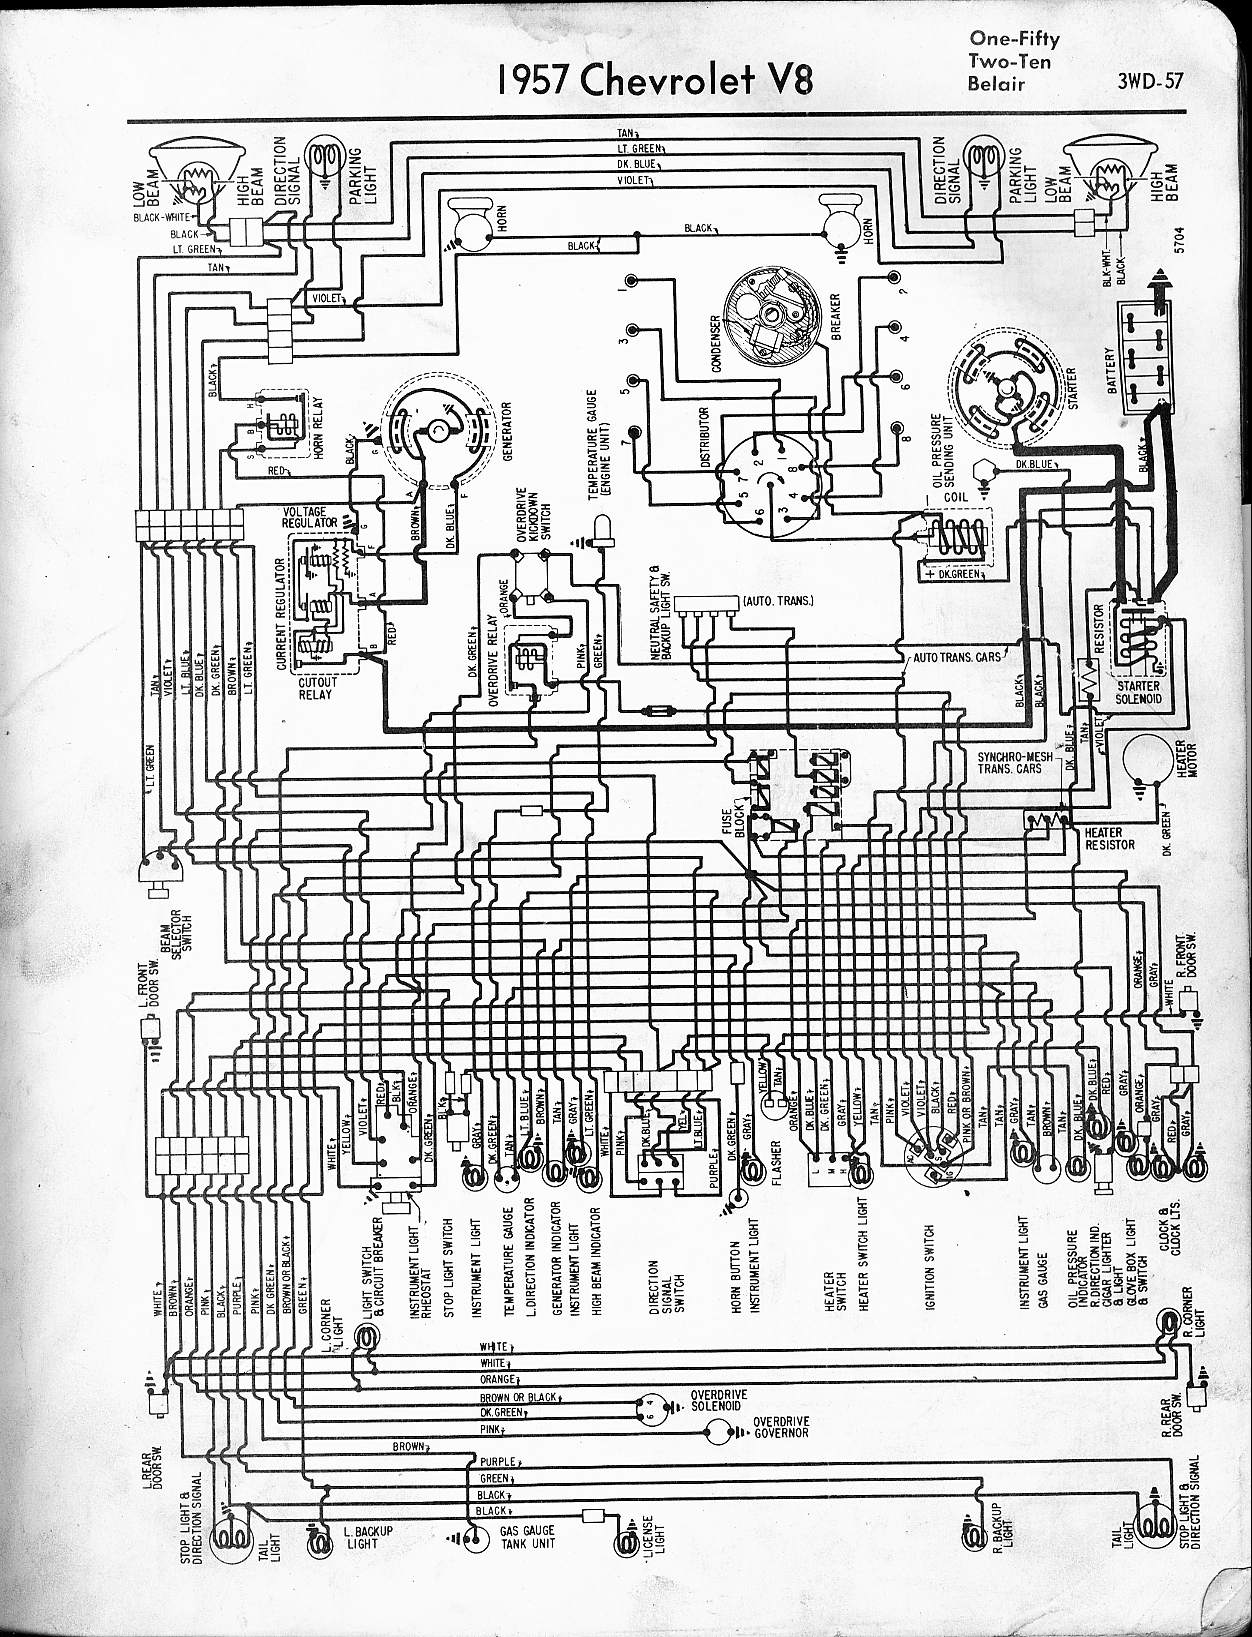 1957 chevrolet ignition switch wiring all wiring diagram 1965 Chevy Ignition Switch Diagram